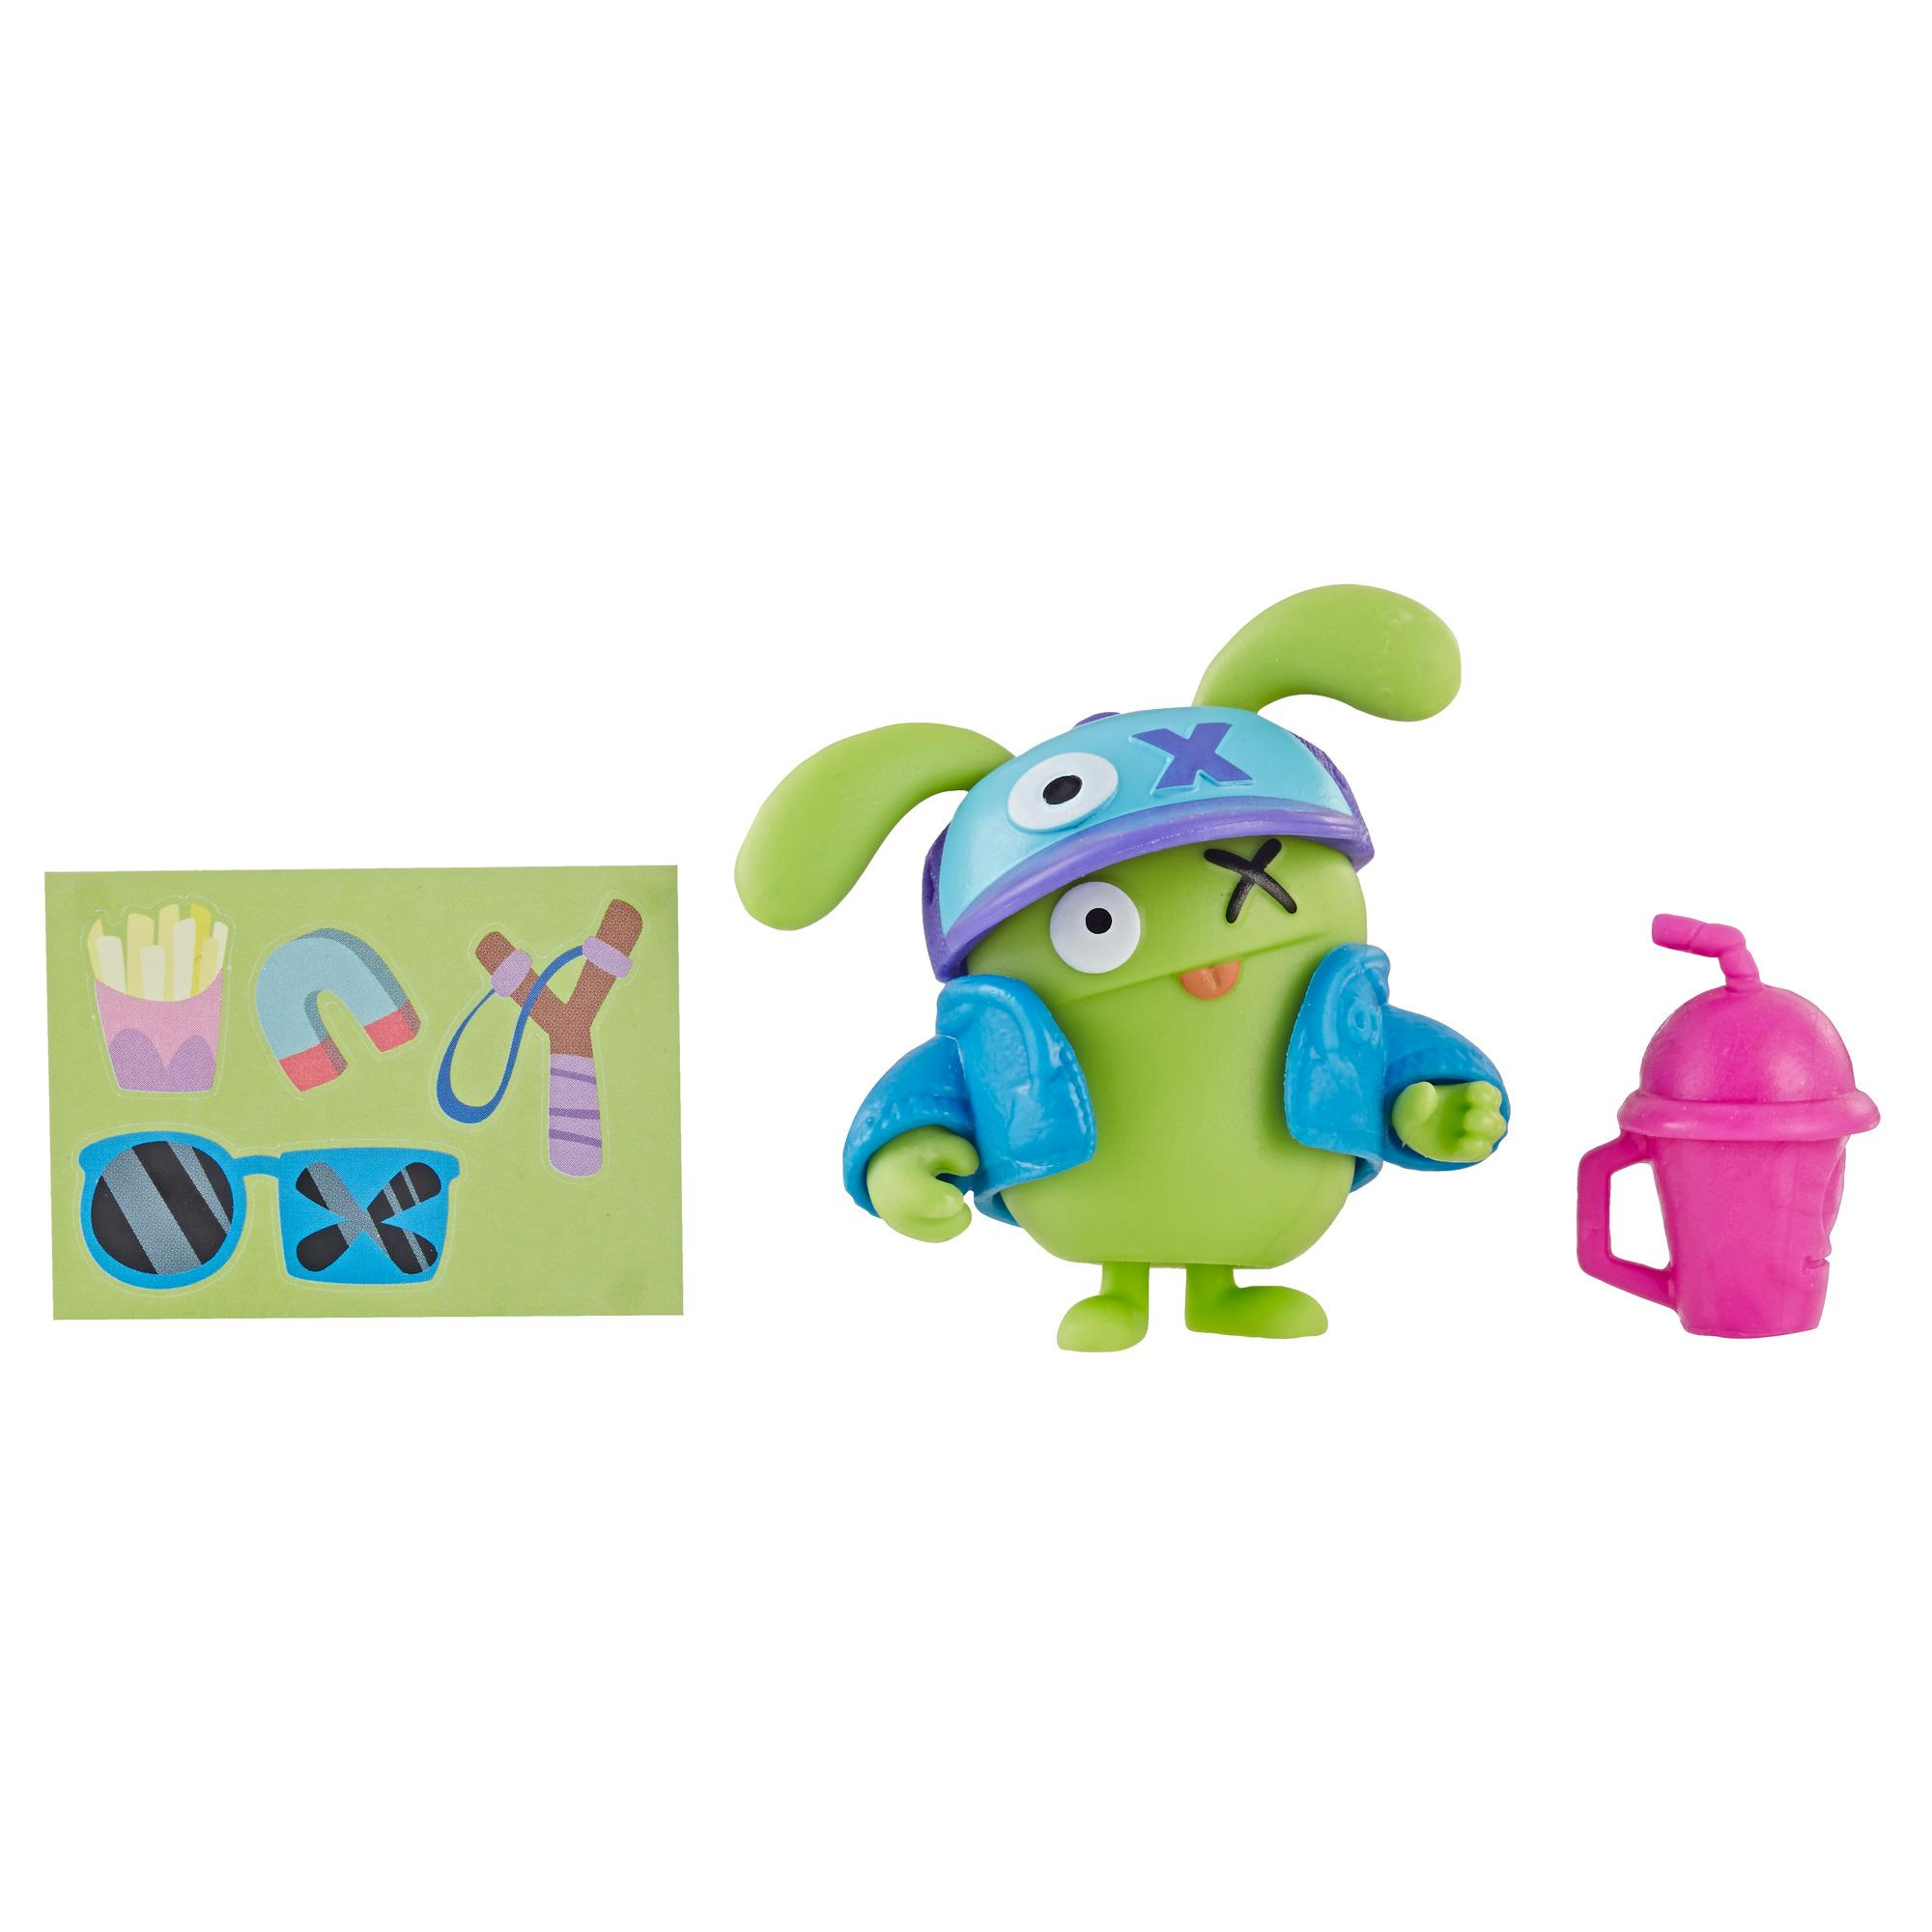 UglyDolls Surprise Disguise Cool Dude OX Toy, Figure and Accessories